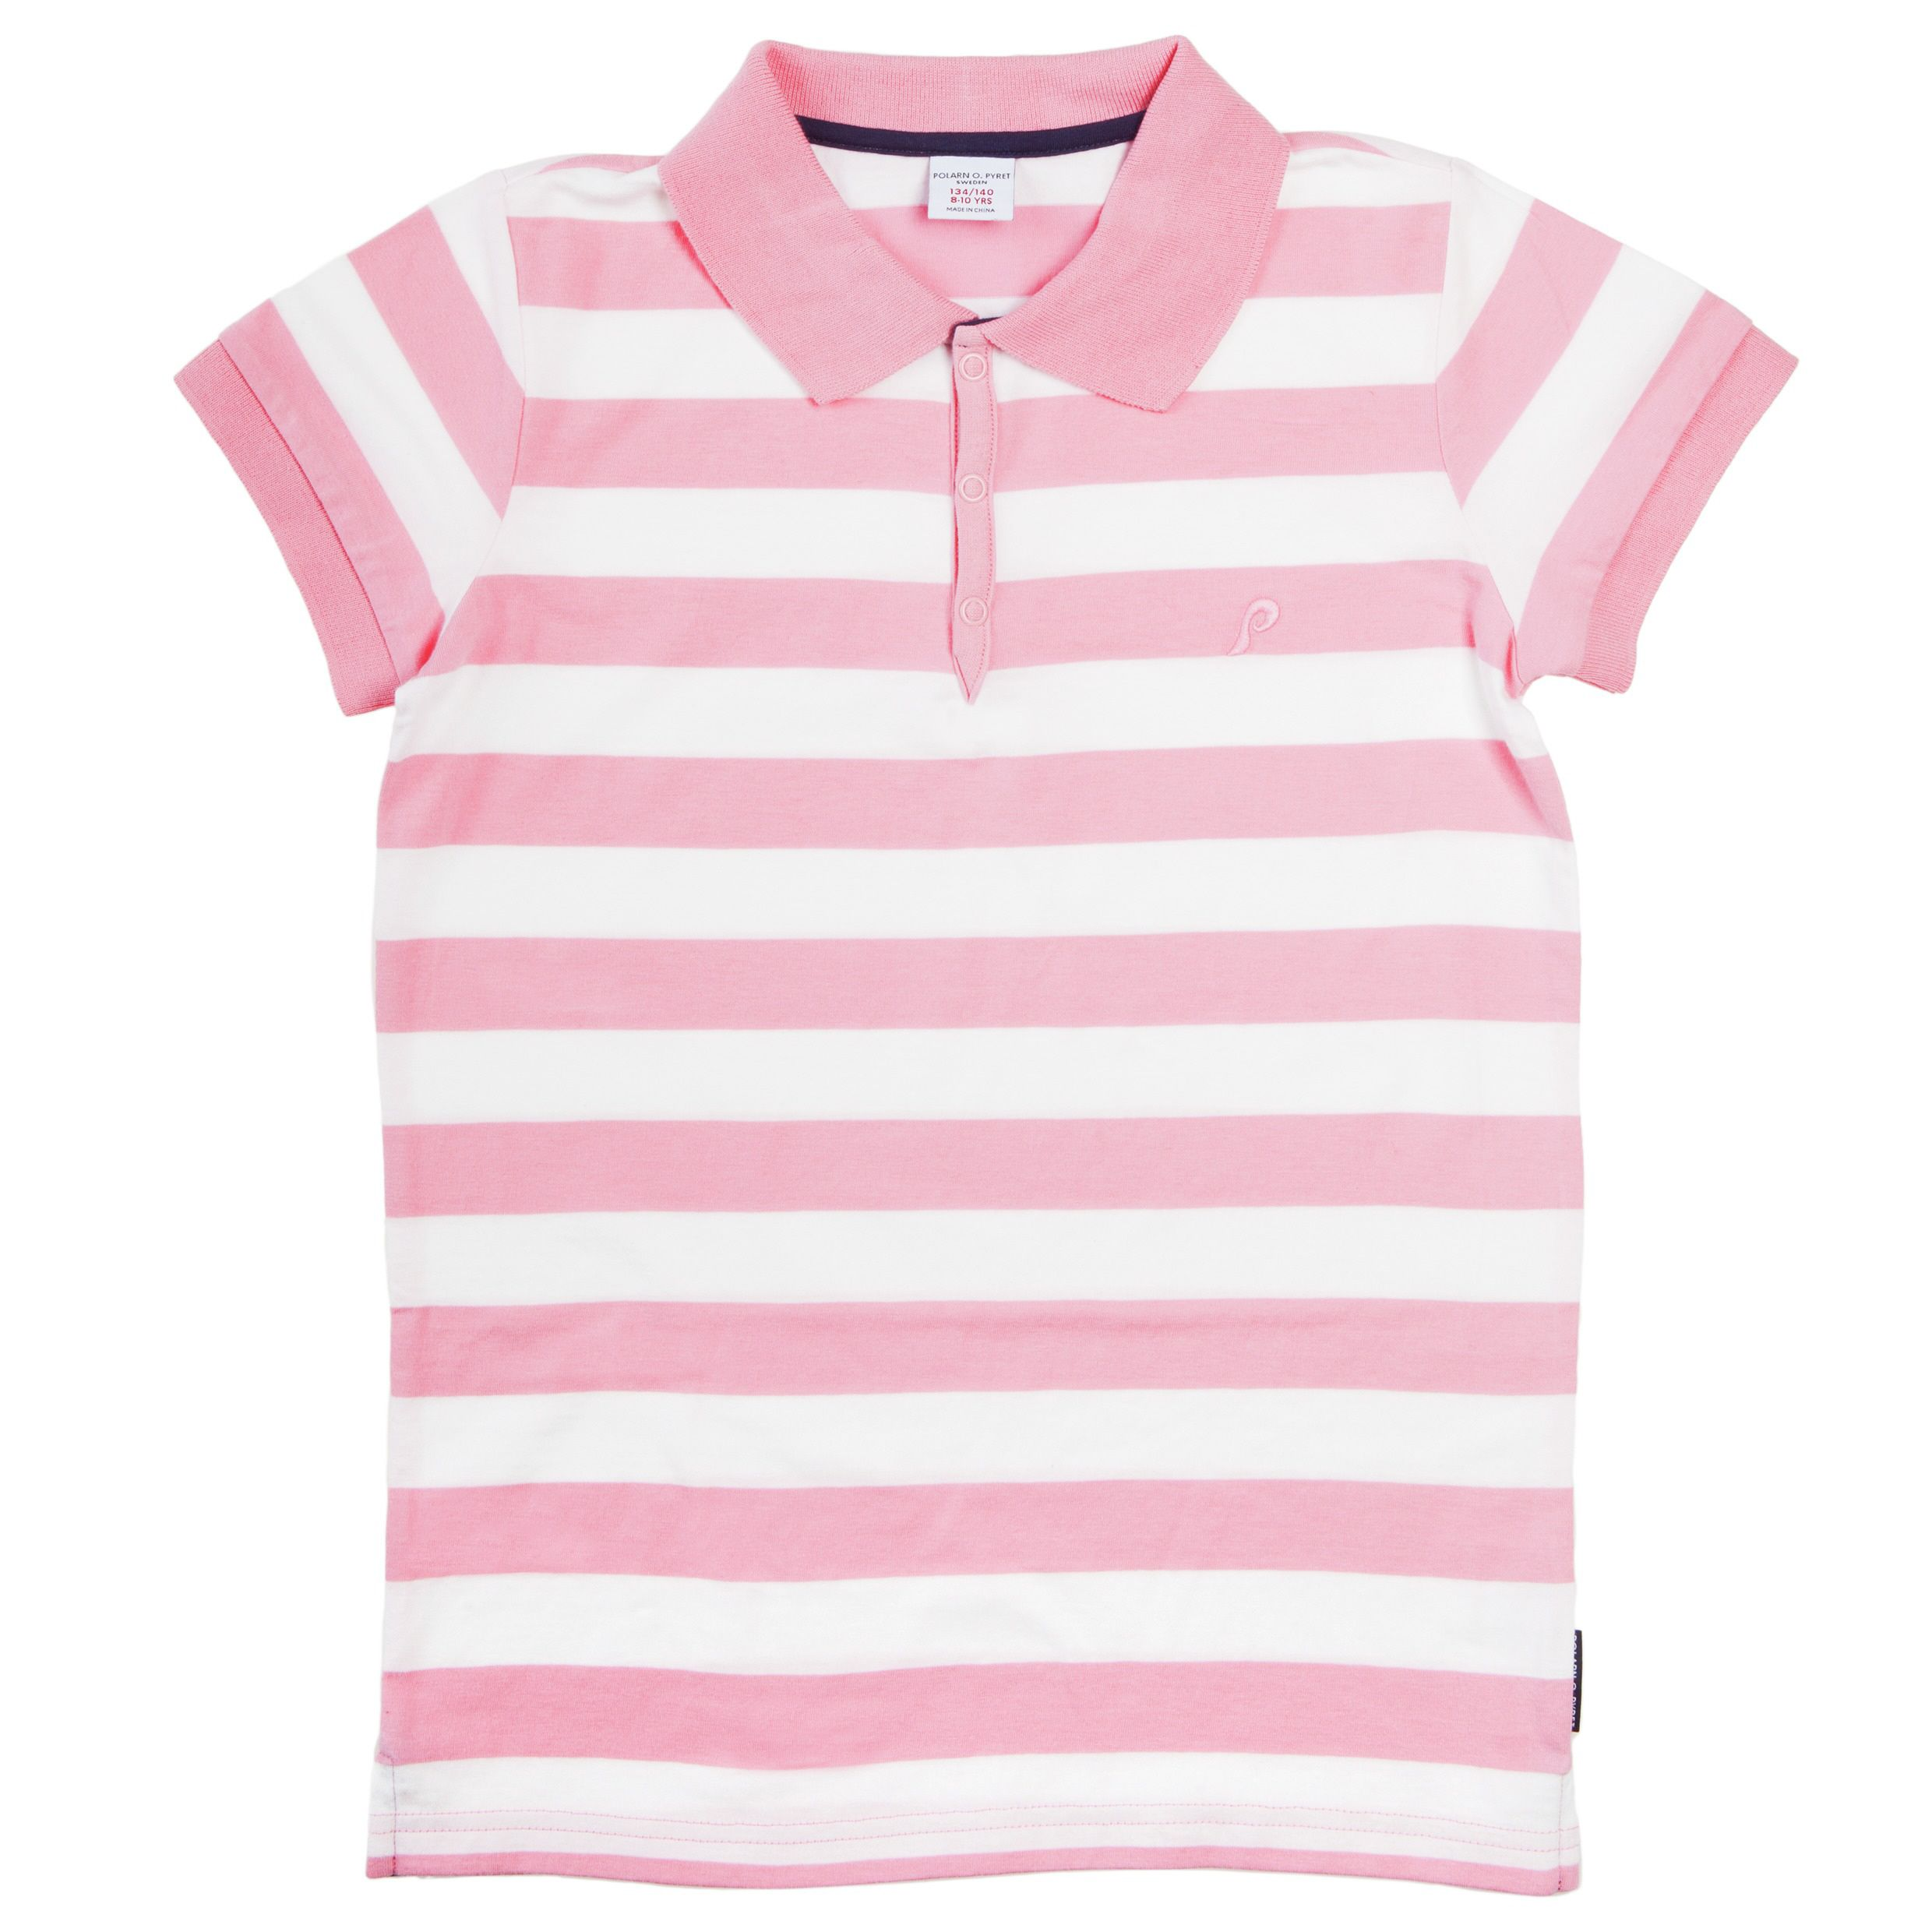 Girls striped polo shirt